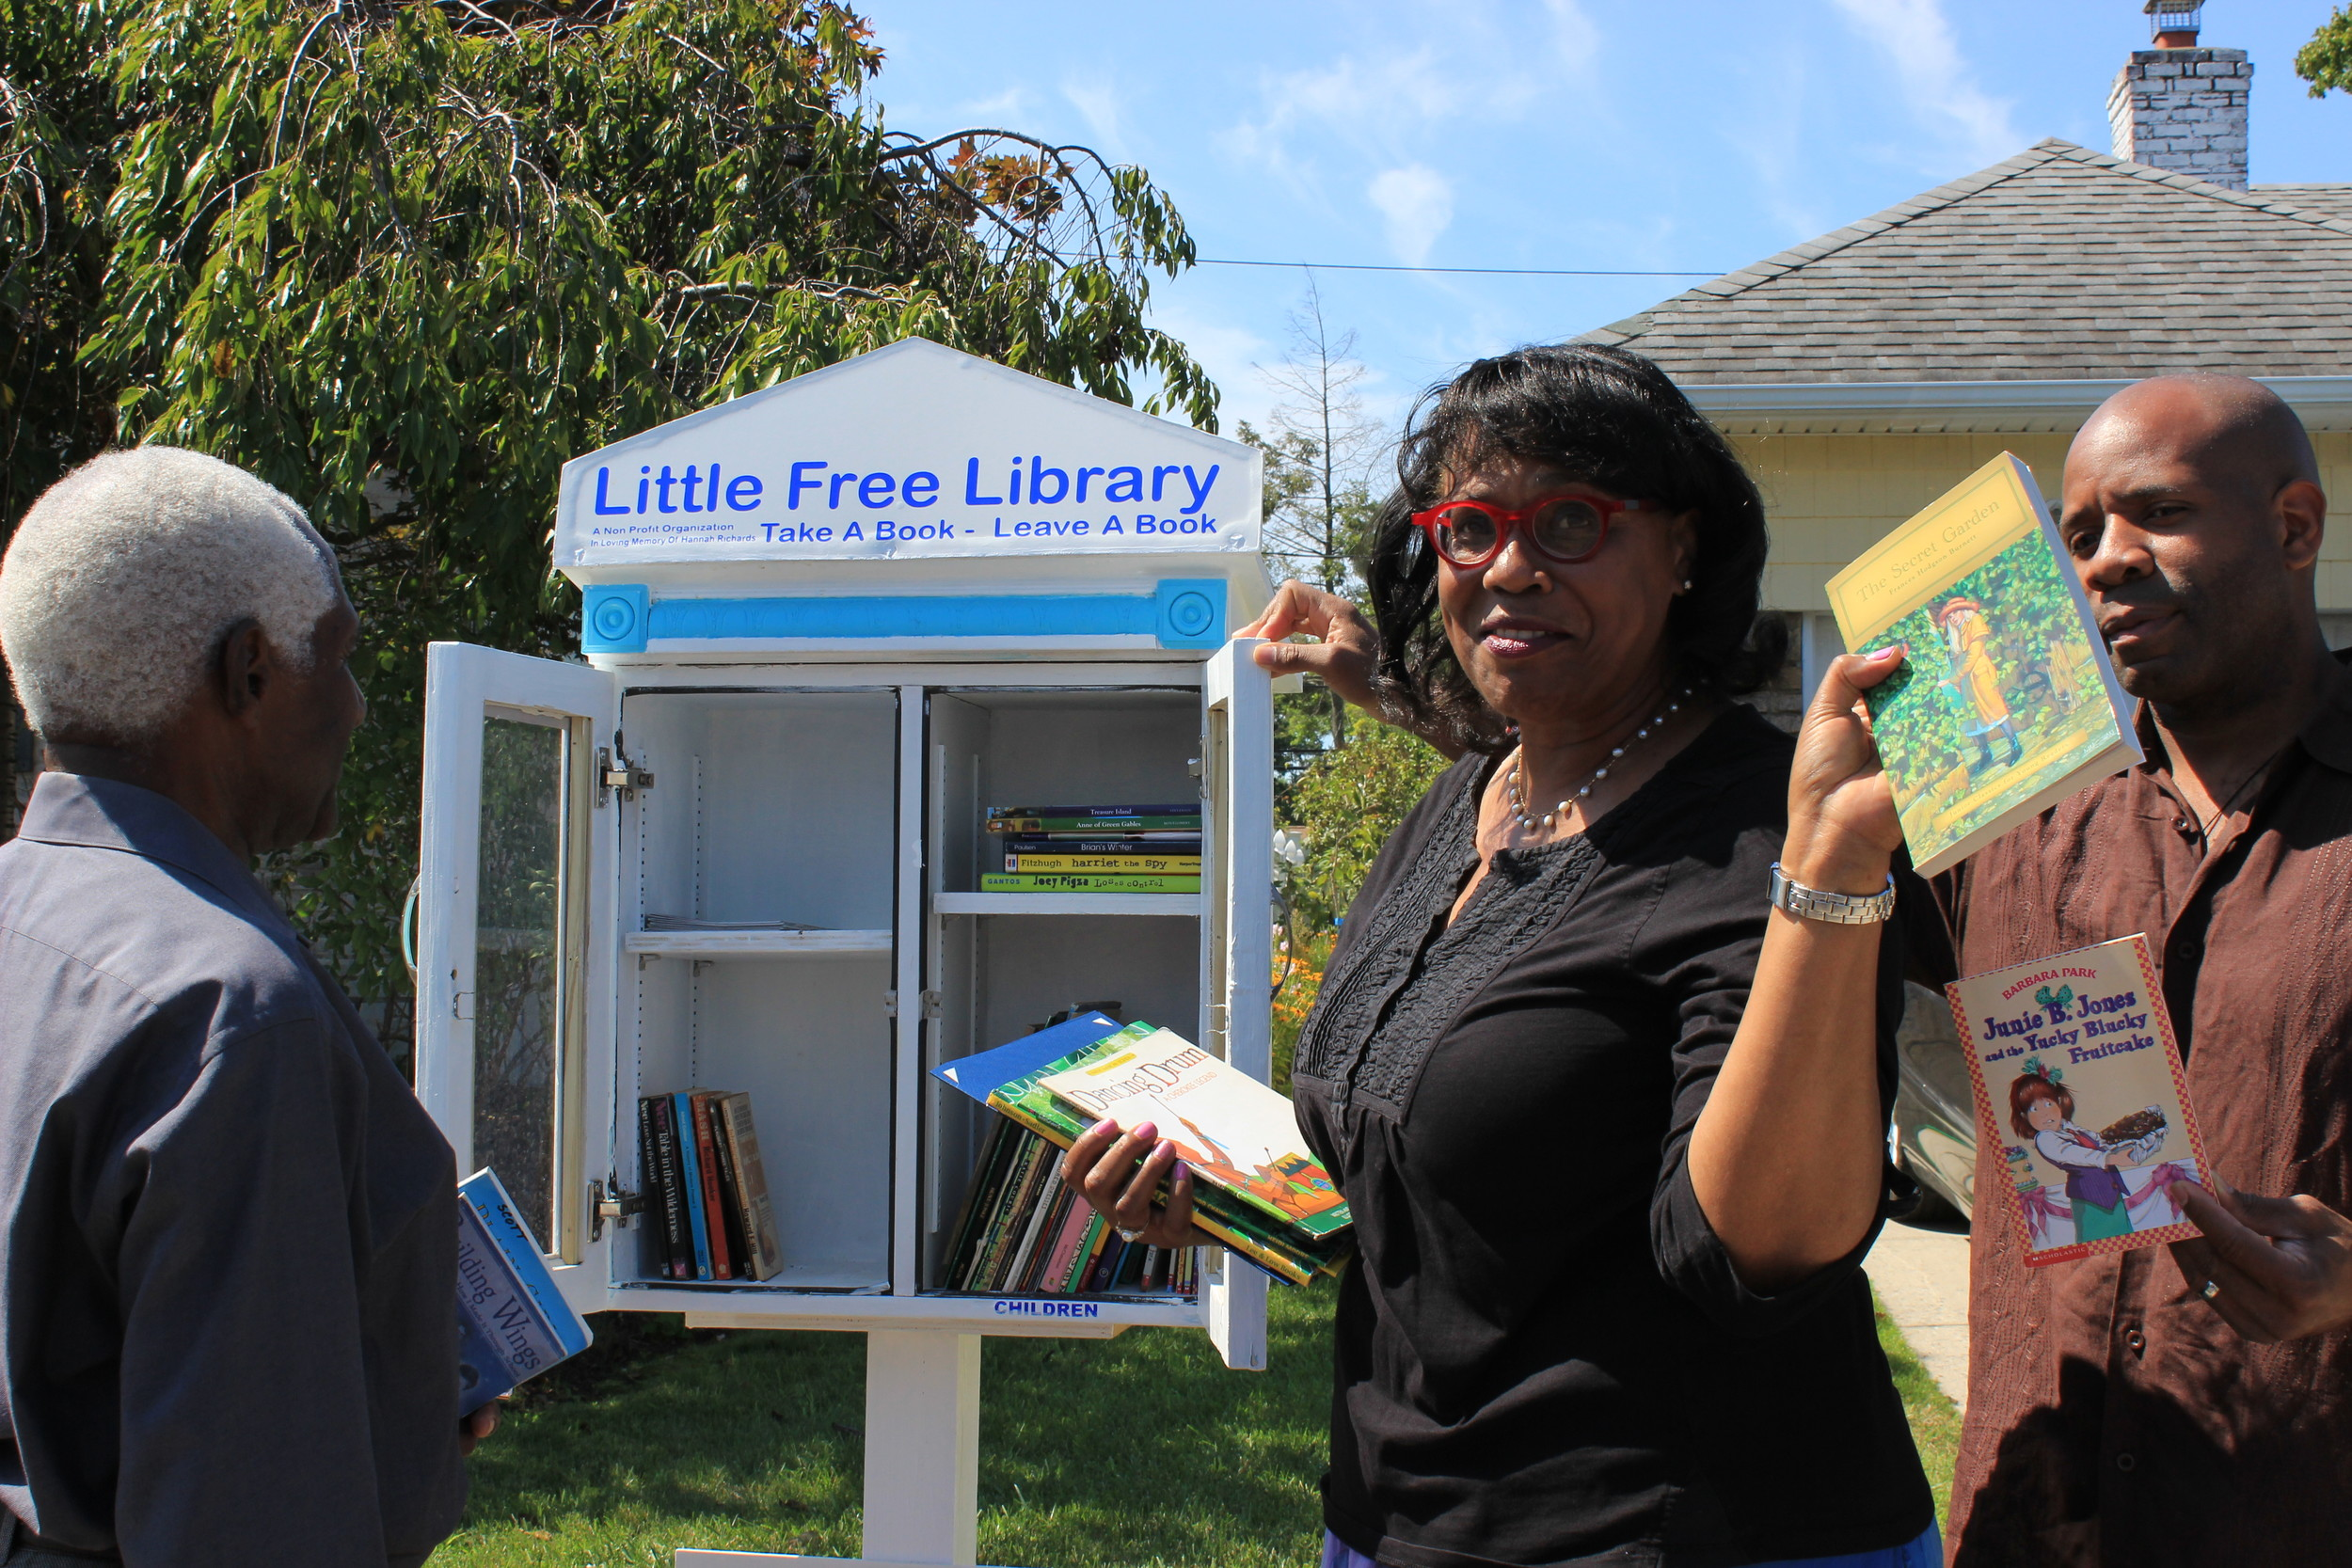 Marcia Morgan, center, worked last fall to create a literacy program called Little Free Library. She put books in the tiny structure, which is in the front yard of her Elmont home. She is joined by her husband, Leonard Morgan, left, and his son, Christopher Morgan, right.